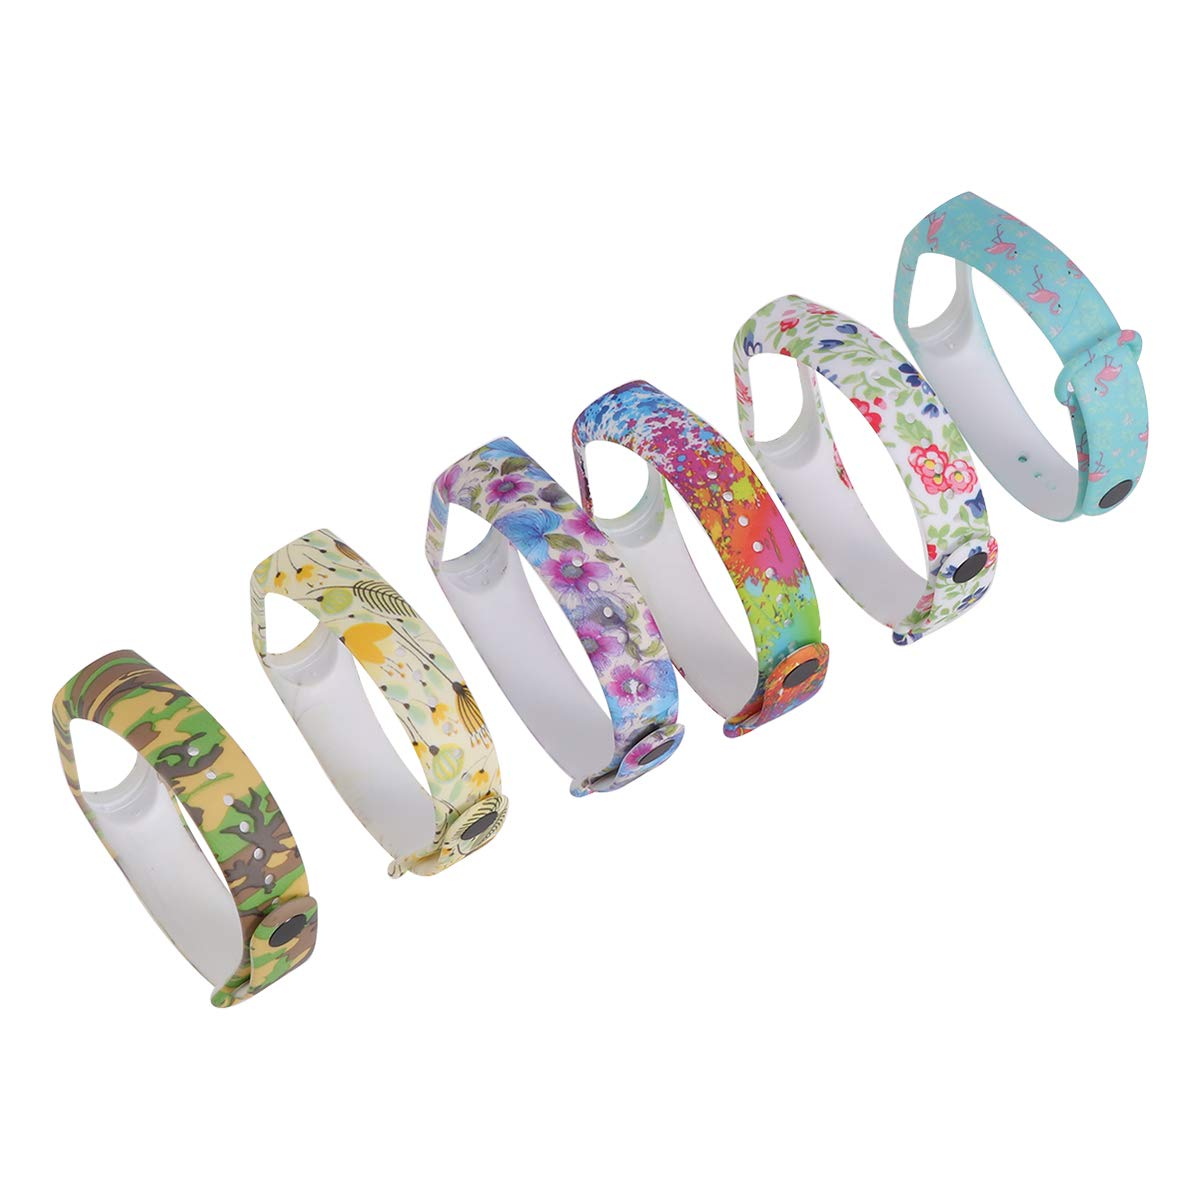 Amazon.com: UKCOCO Band for Xiaomi Mi Band 3, 6 Pack Colorful Cartoon Floral Printed Soft Silicone Band Women Bracelet Smart Watch Strap Replacement ...